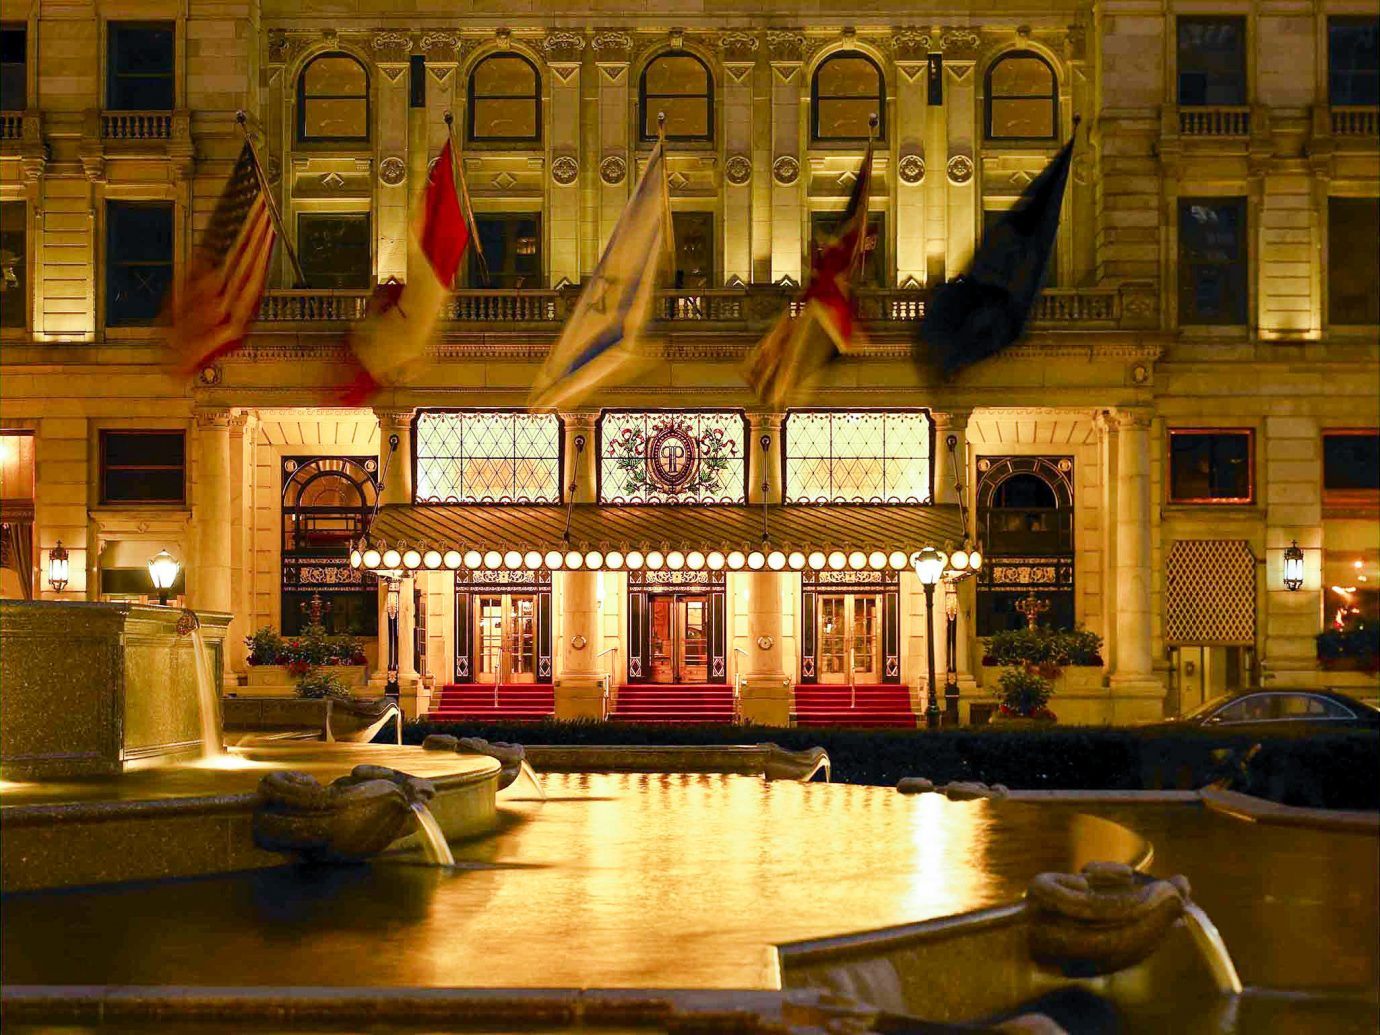 Exterior of the Plaza in New York City